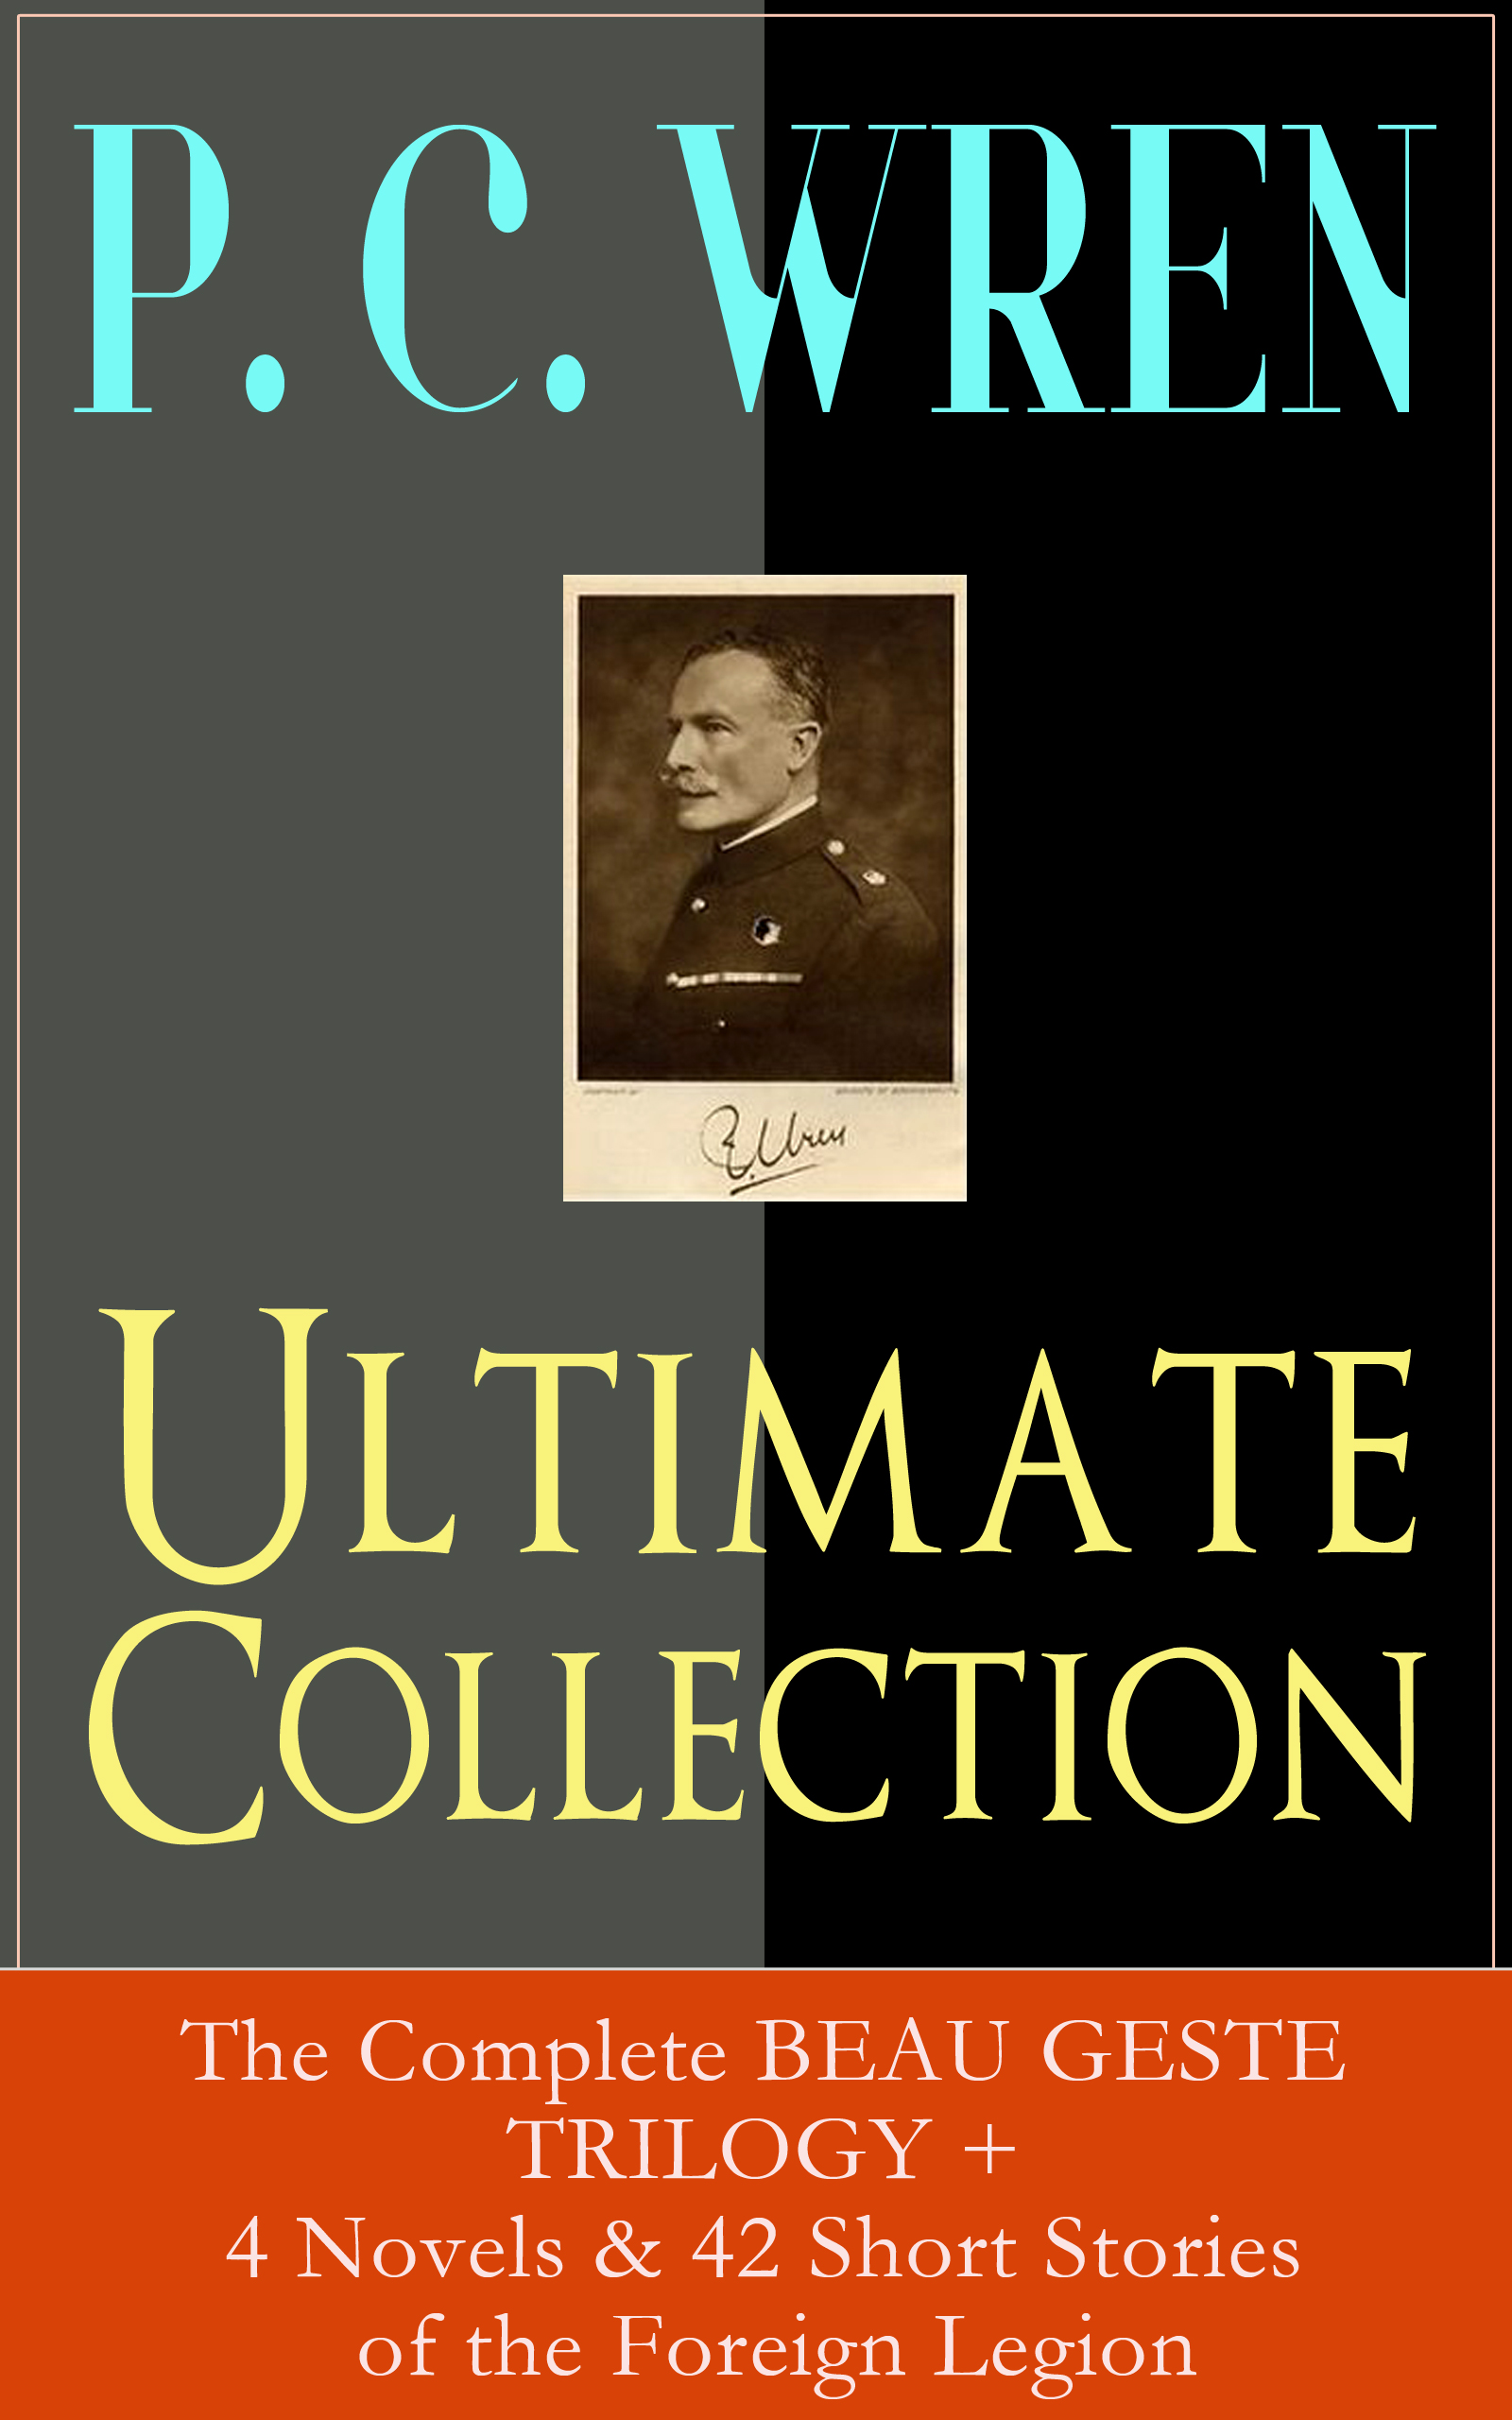 P. C. Wren P. C. WREN Ultimate Collection: The Complete BEAU GESTE TRILOGY + 4 Novels & 42 Short Stories of the Foreign Legion the yardbirds the yardbirds the ultimate collection 2 cd